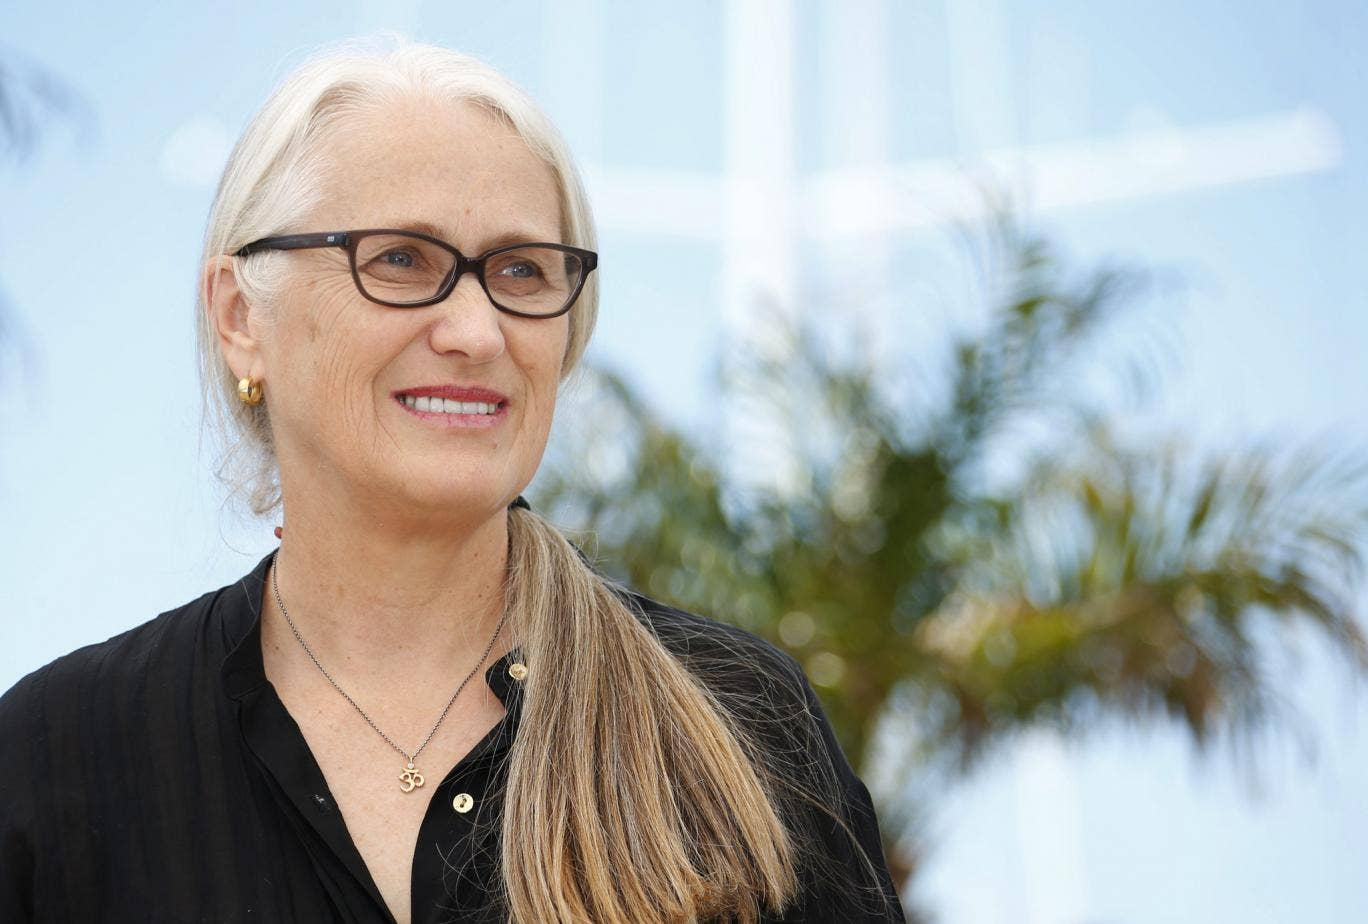 Jane Campion will succeed Steven Spielberg as president of the Cannes jury